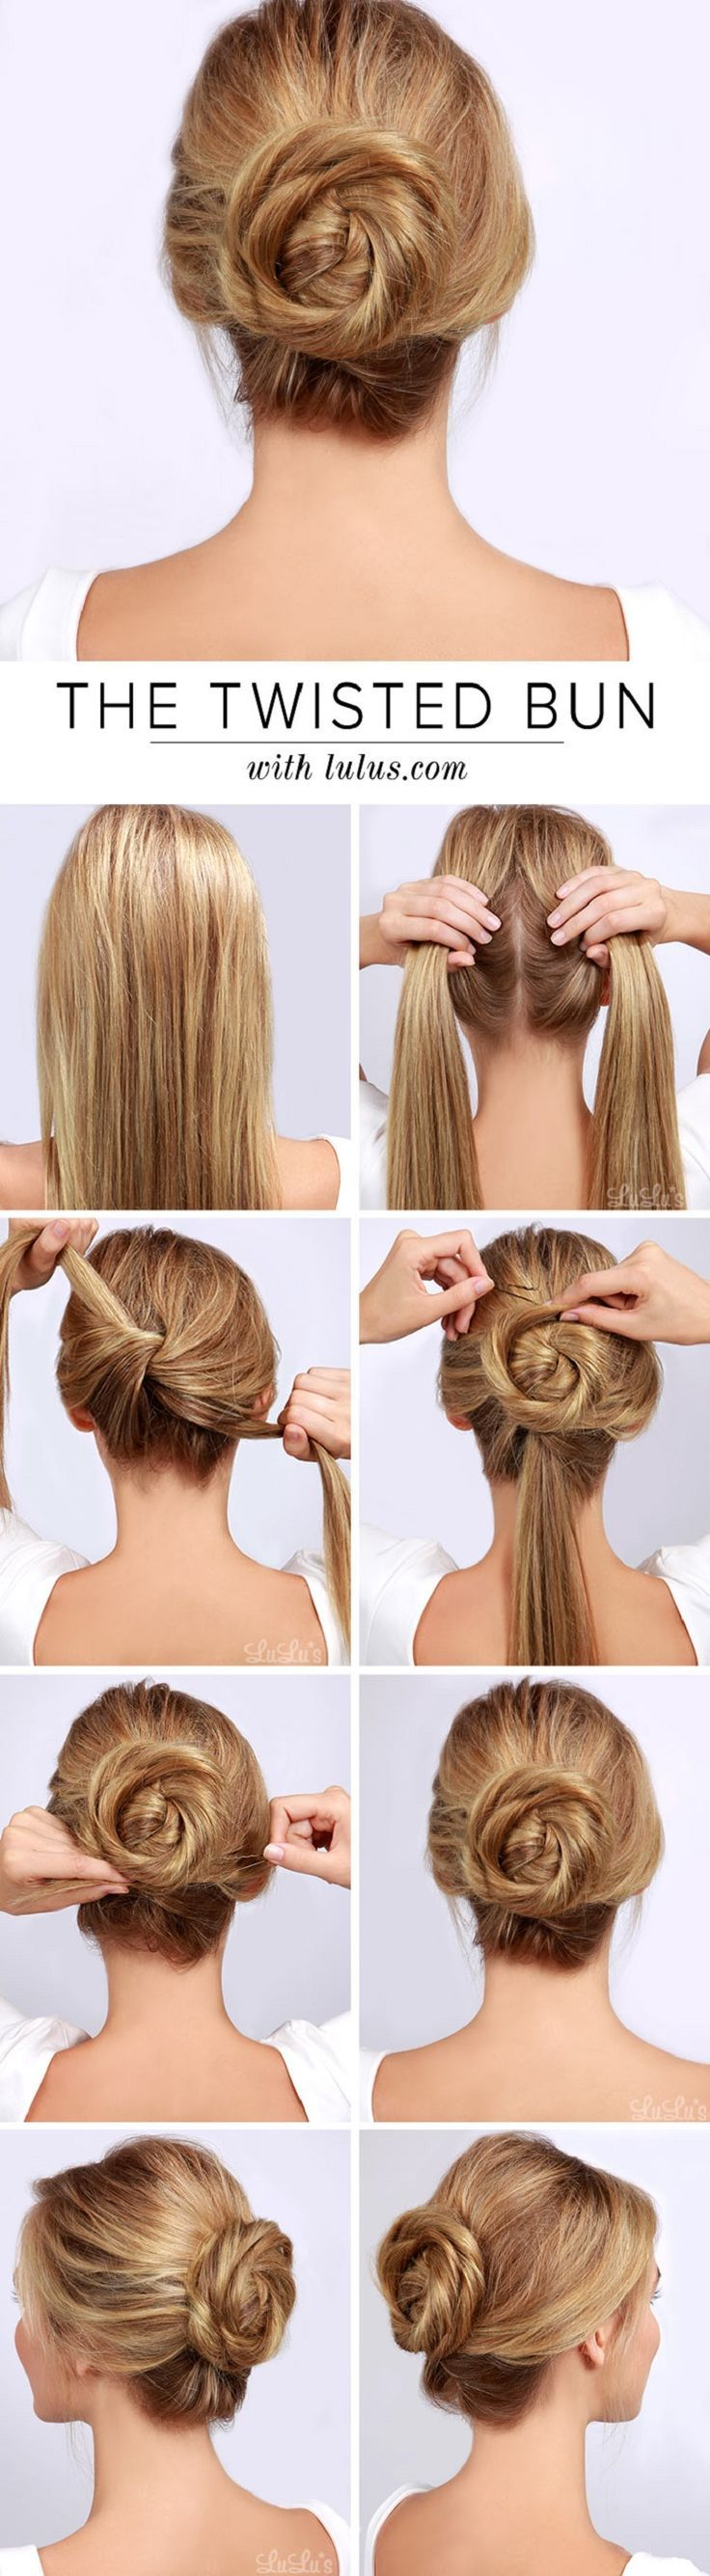 easy but gorgeous hairstyles for busy mornings